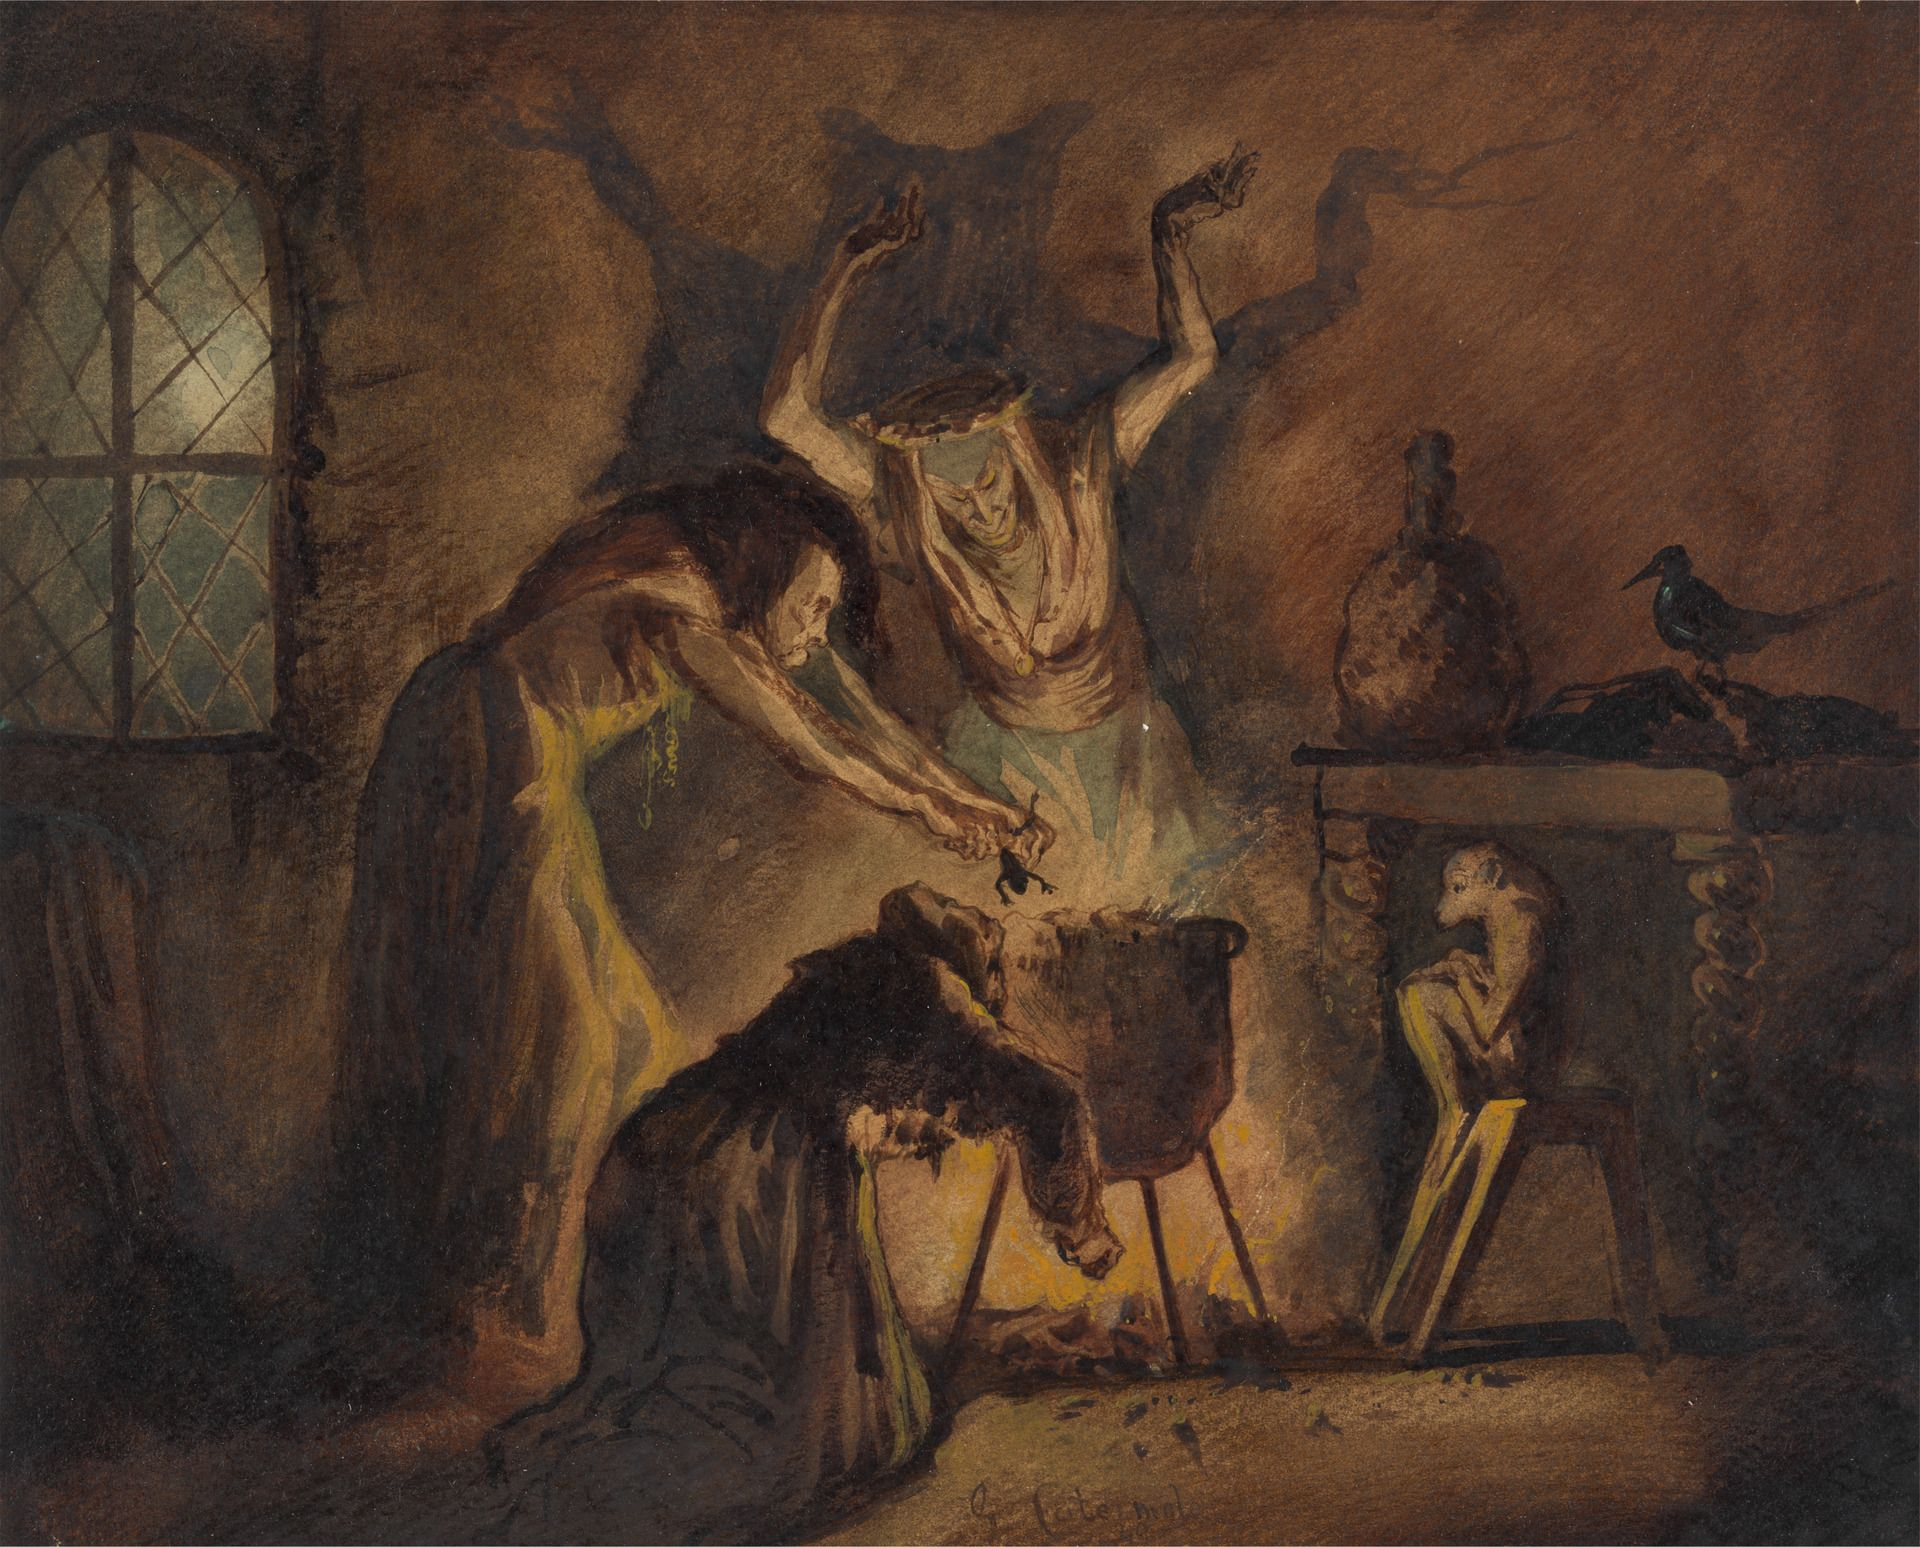 essay on the 3 witches in macbeth The three witches in macbeth essays what is the significance of the three  witches in macbeth in this essay, i am seeking to answer the question: what is  the.